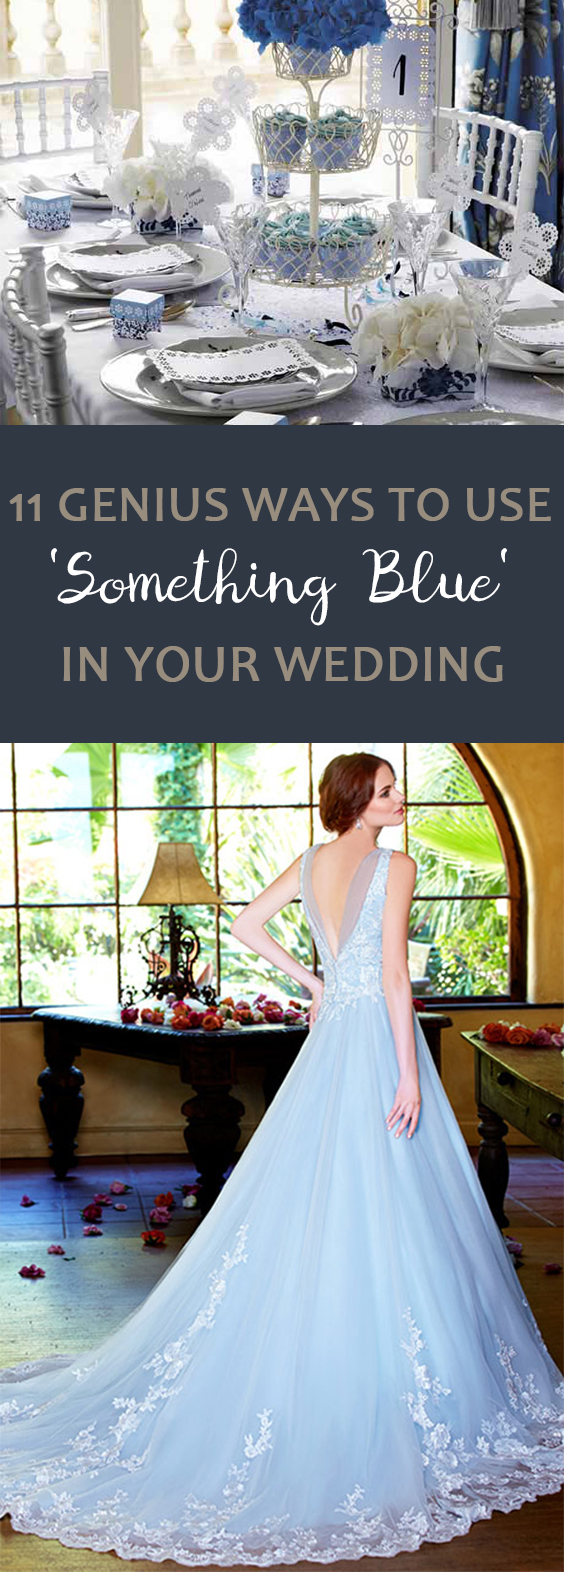 Weddings, wedding tips, wedding traditions, wedding decor, DIY wedding, DIY decor, popular pin, wedding hacks, wedding tips and tricks, frugal wedding, dream weddings.